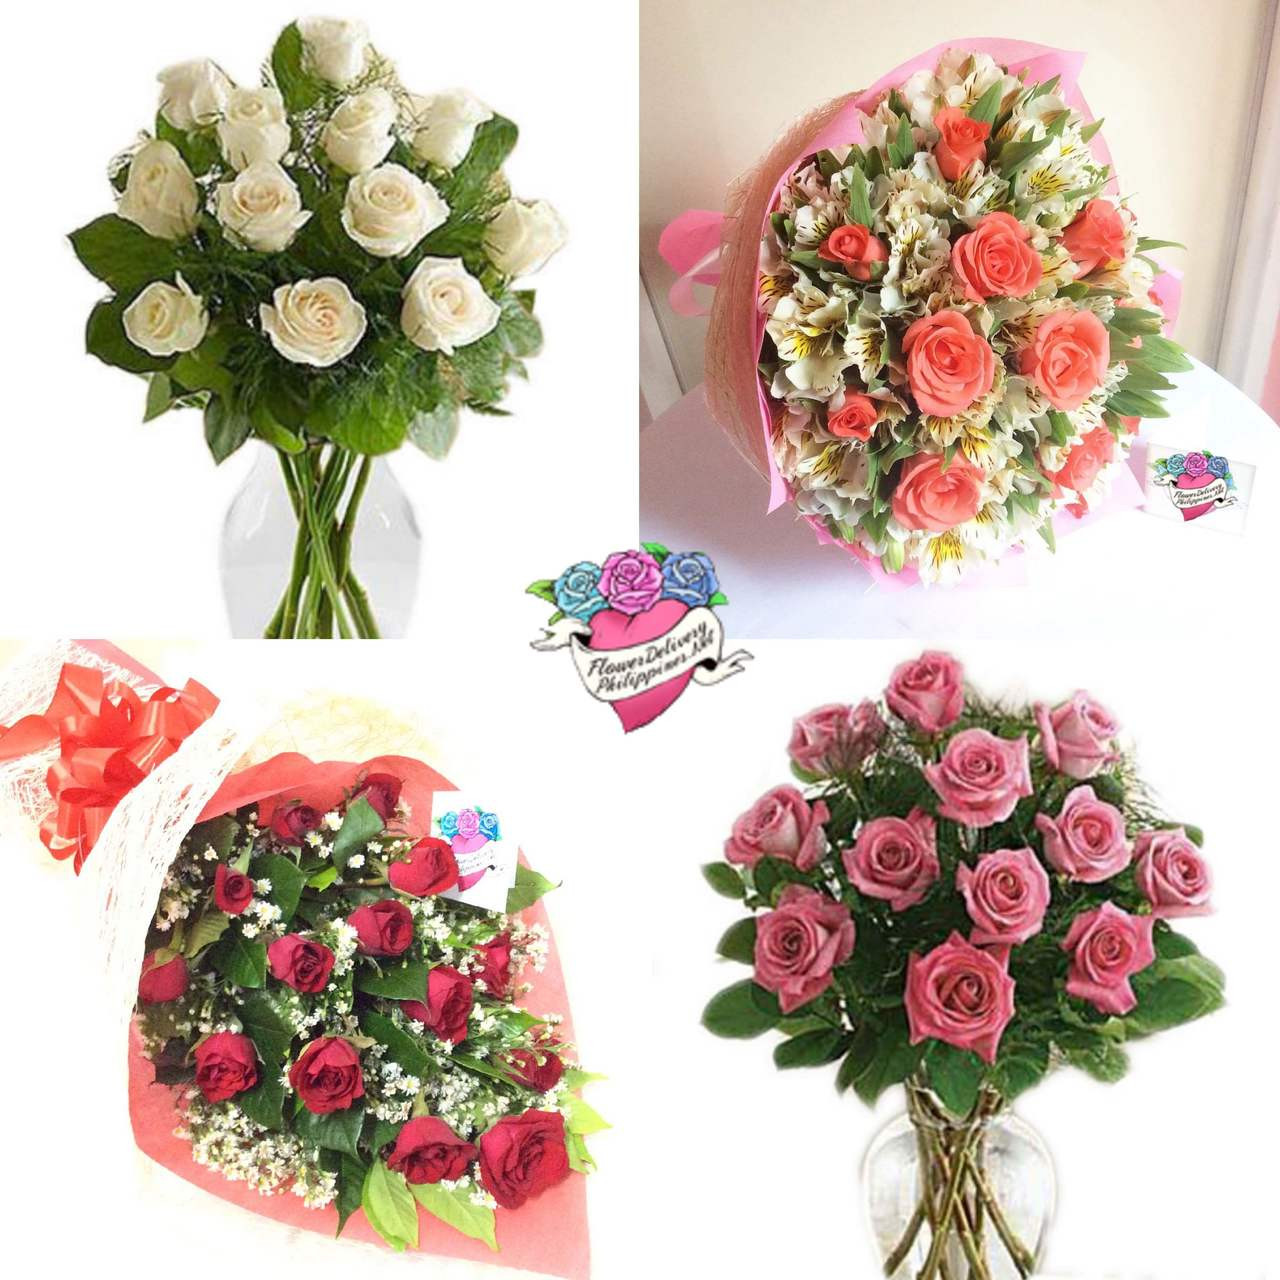 Roses Lovers Flower Subscription